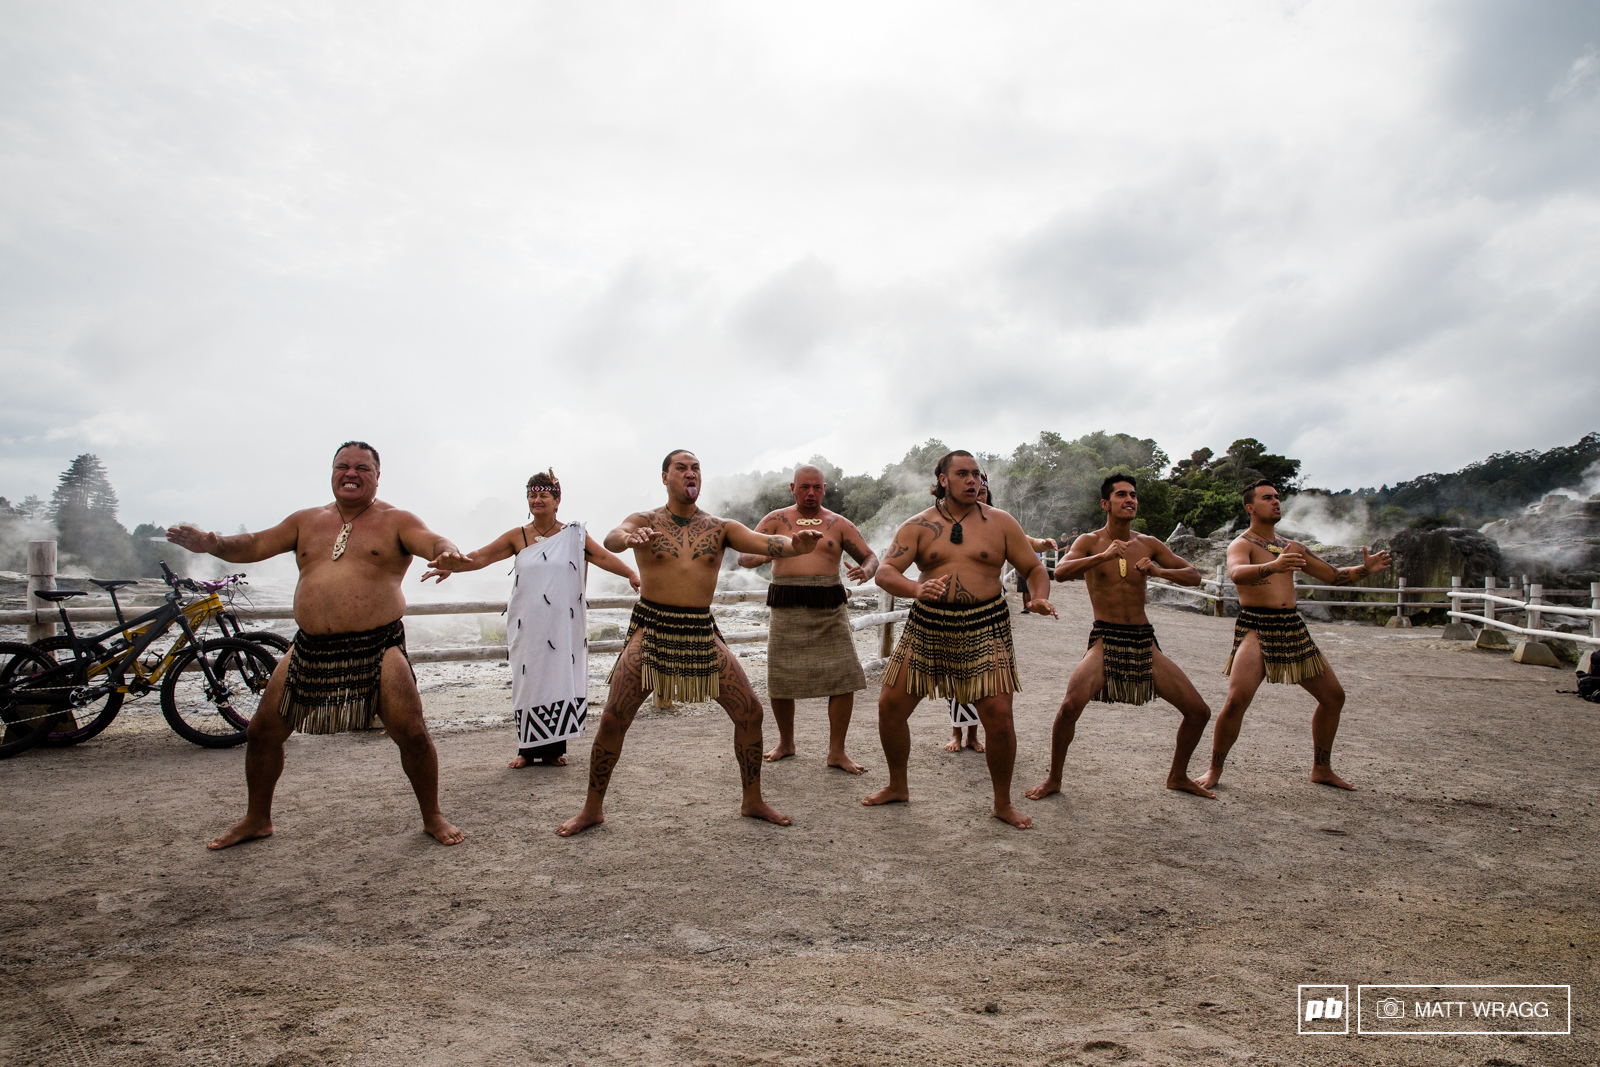 Before the pro men took to the course there was a performance of the Haka to set the mood for the day.